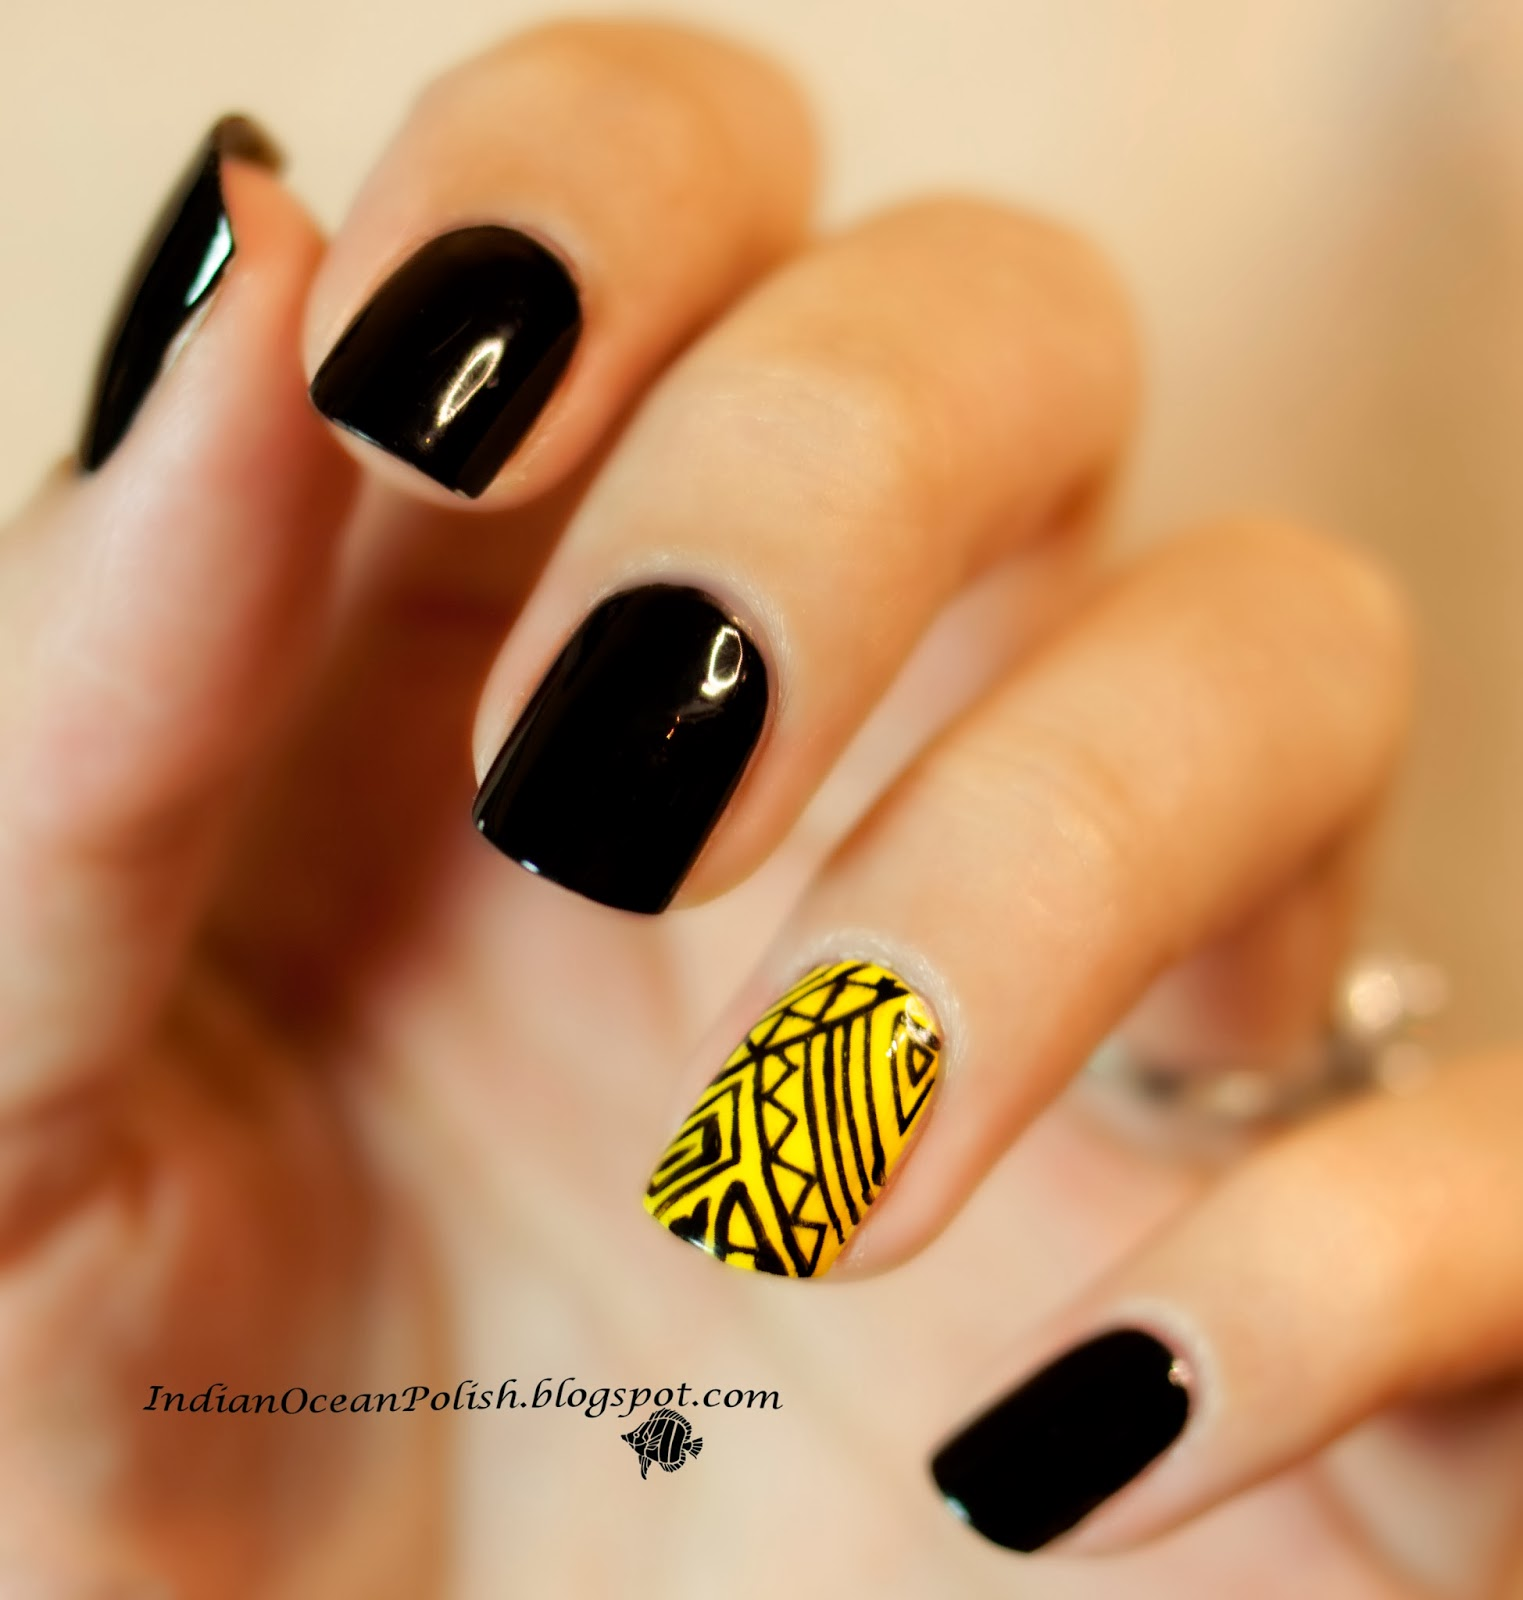 used OPI Black Onyx on the non feature nails, and China Glaze Happy ...